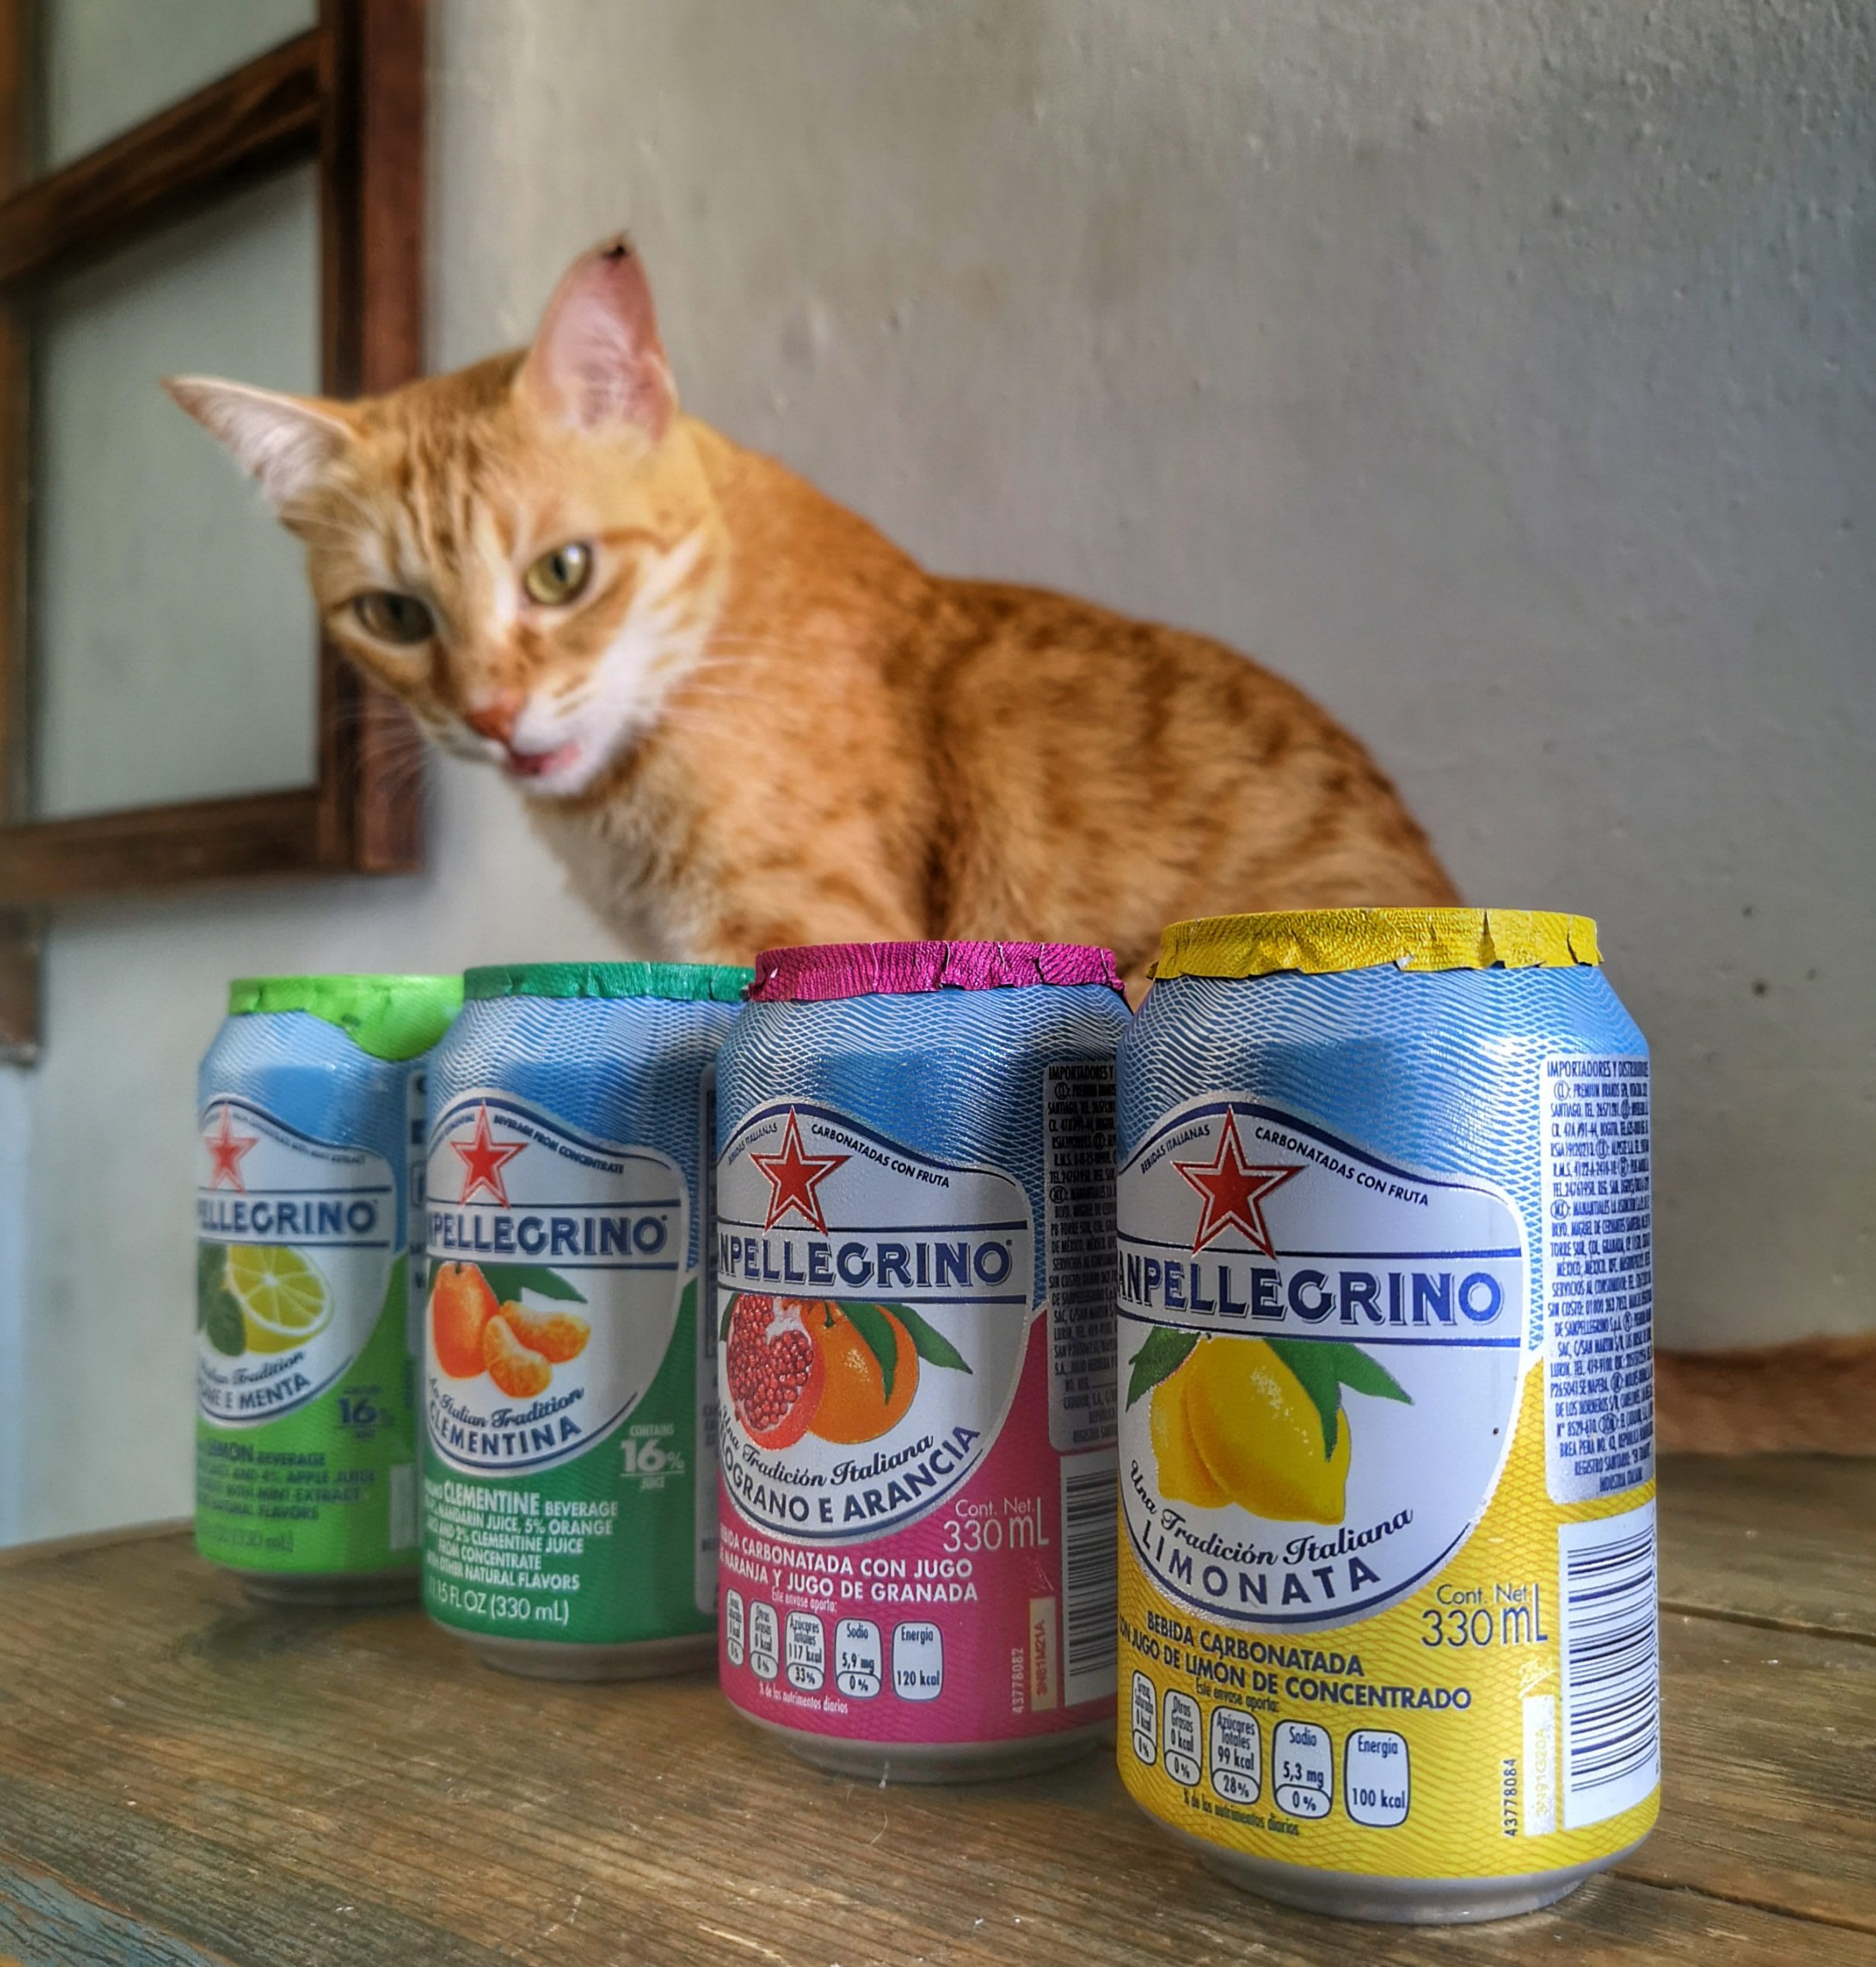 My cat Squanchy is curious about the 4 different Sanpellegrinos Fruit Sodas I have bought.